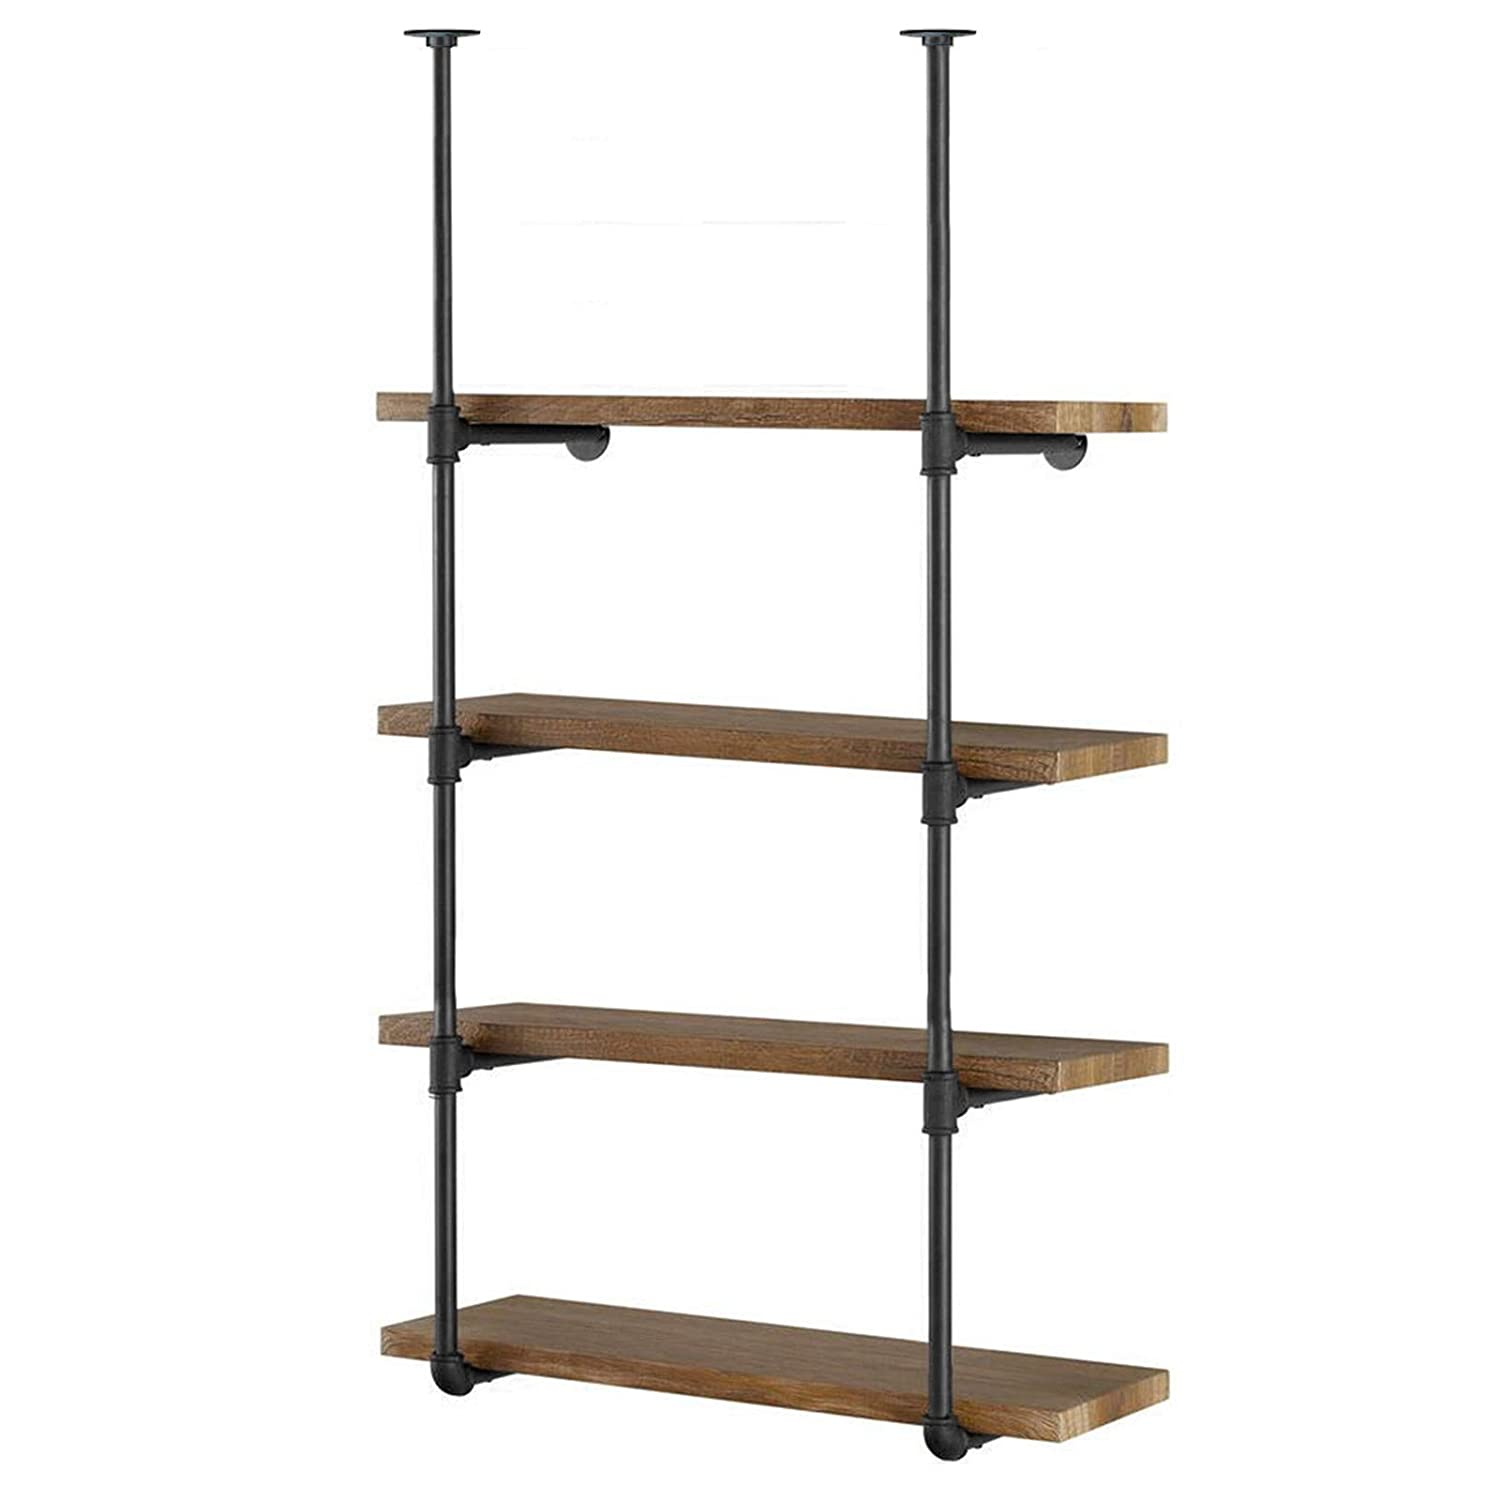 "Yuanshikj 2Pc (56"" Tall) (12"" deep) Industrial Wall Mount Iron Pipe Shelf Shelves Shelving Bracket Vintage Retro Black Open Bookshelf Bookcase DIY Storage Office Kitchen (2 Pcs 4Tier Hardware only)"